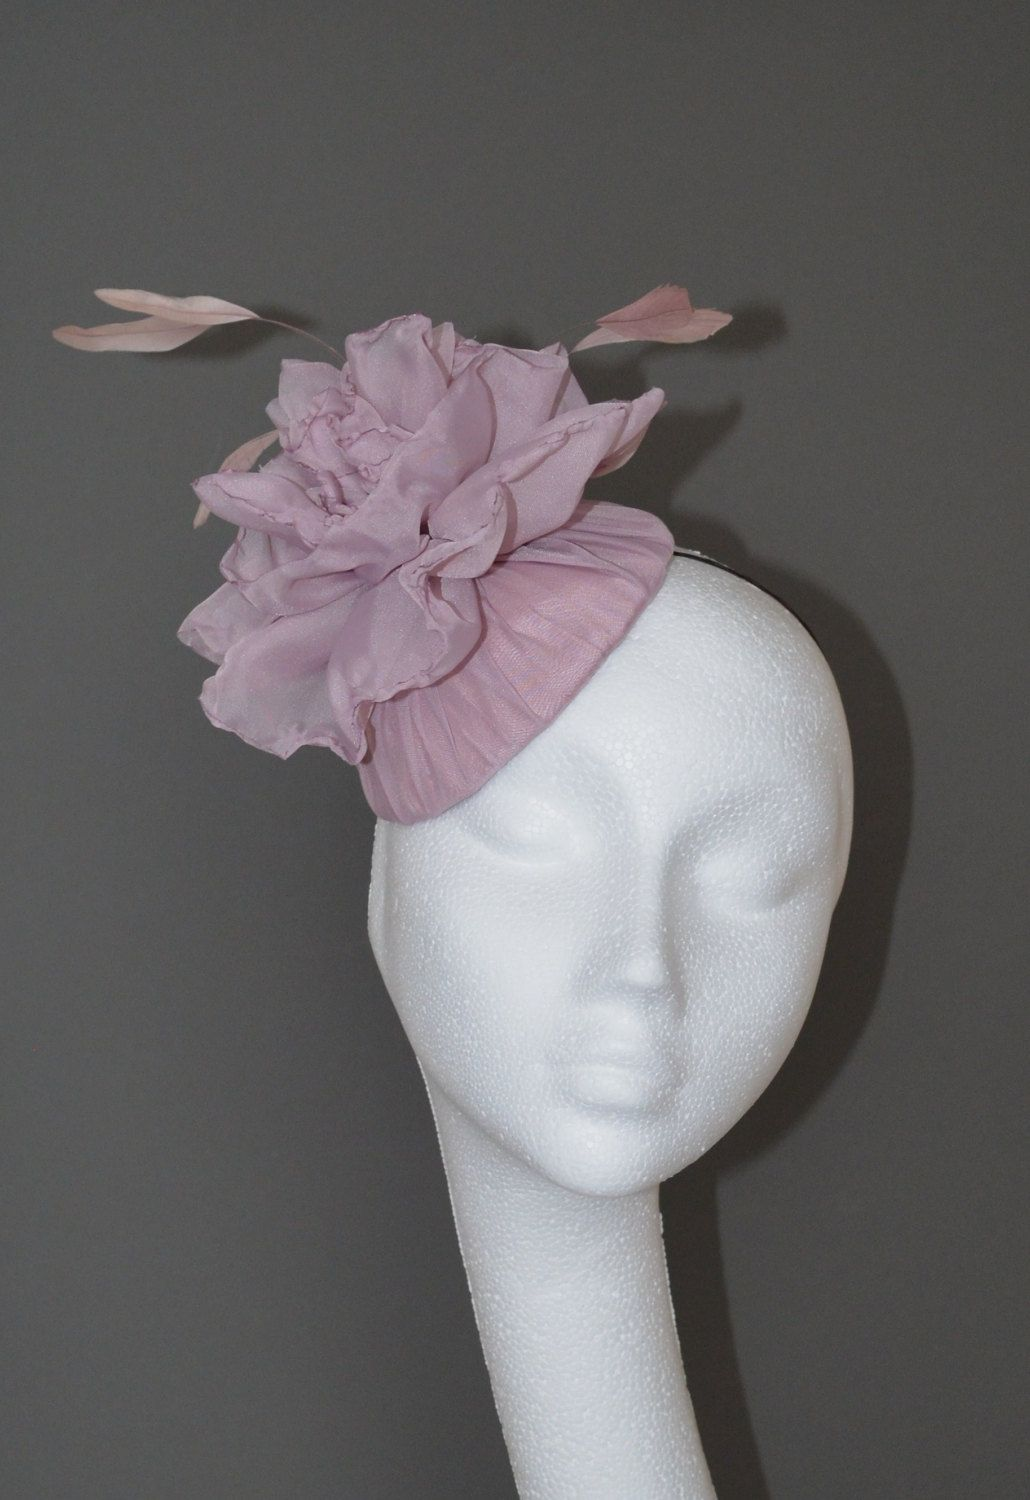 Dusky pink flower hat. Pink wedding hat. Pink flower fascinator. Pink  flower hat. Pink bridal hat. Pink Ascot hat. Pink Derby hat. by  jaracedesigns on Etsy bd4939e0a01